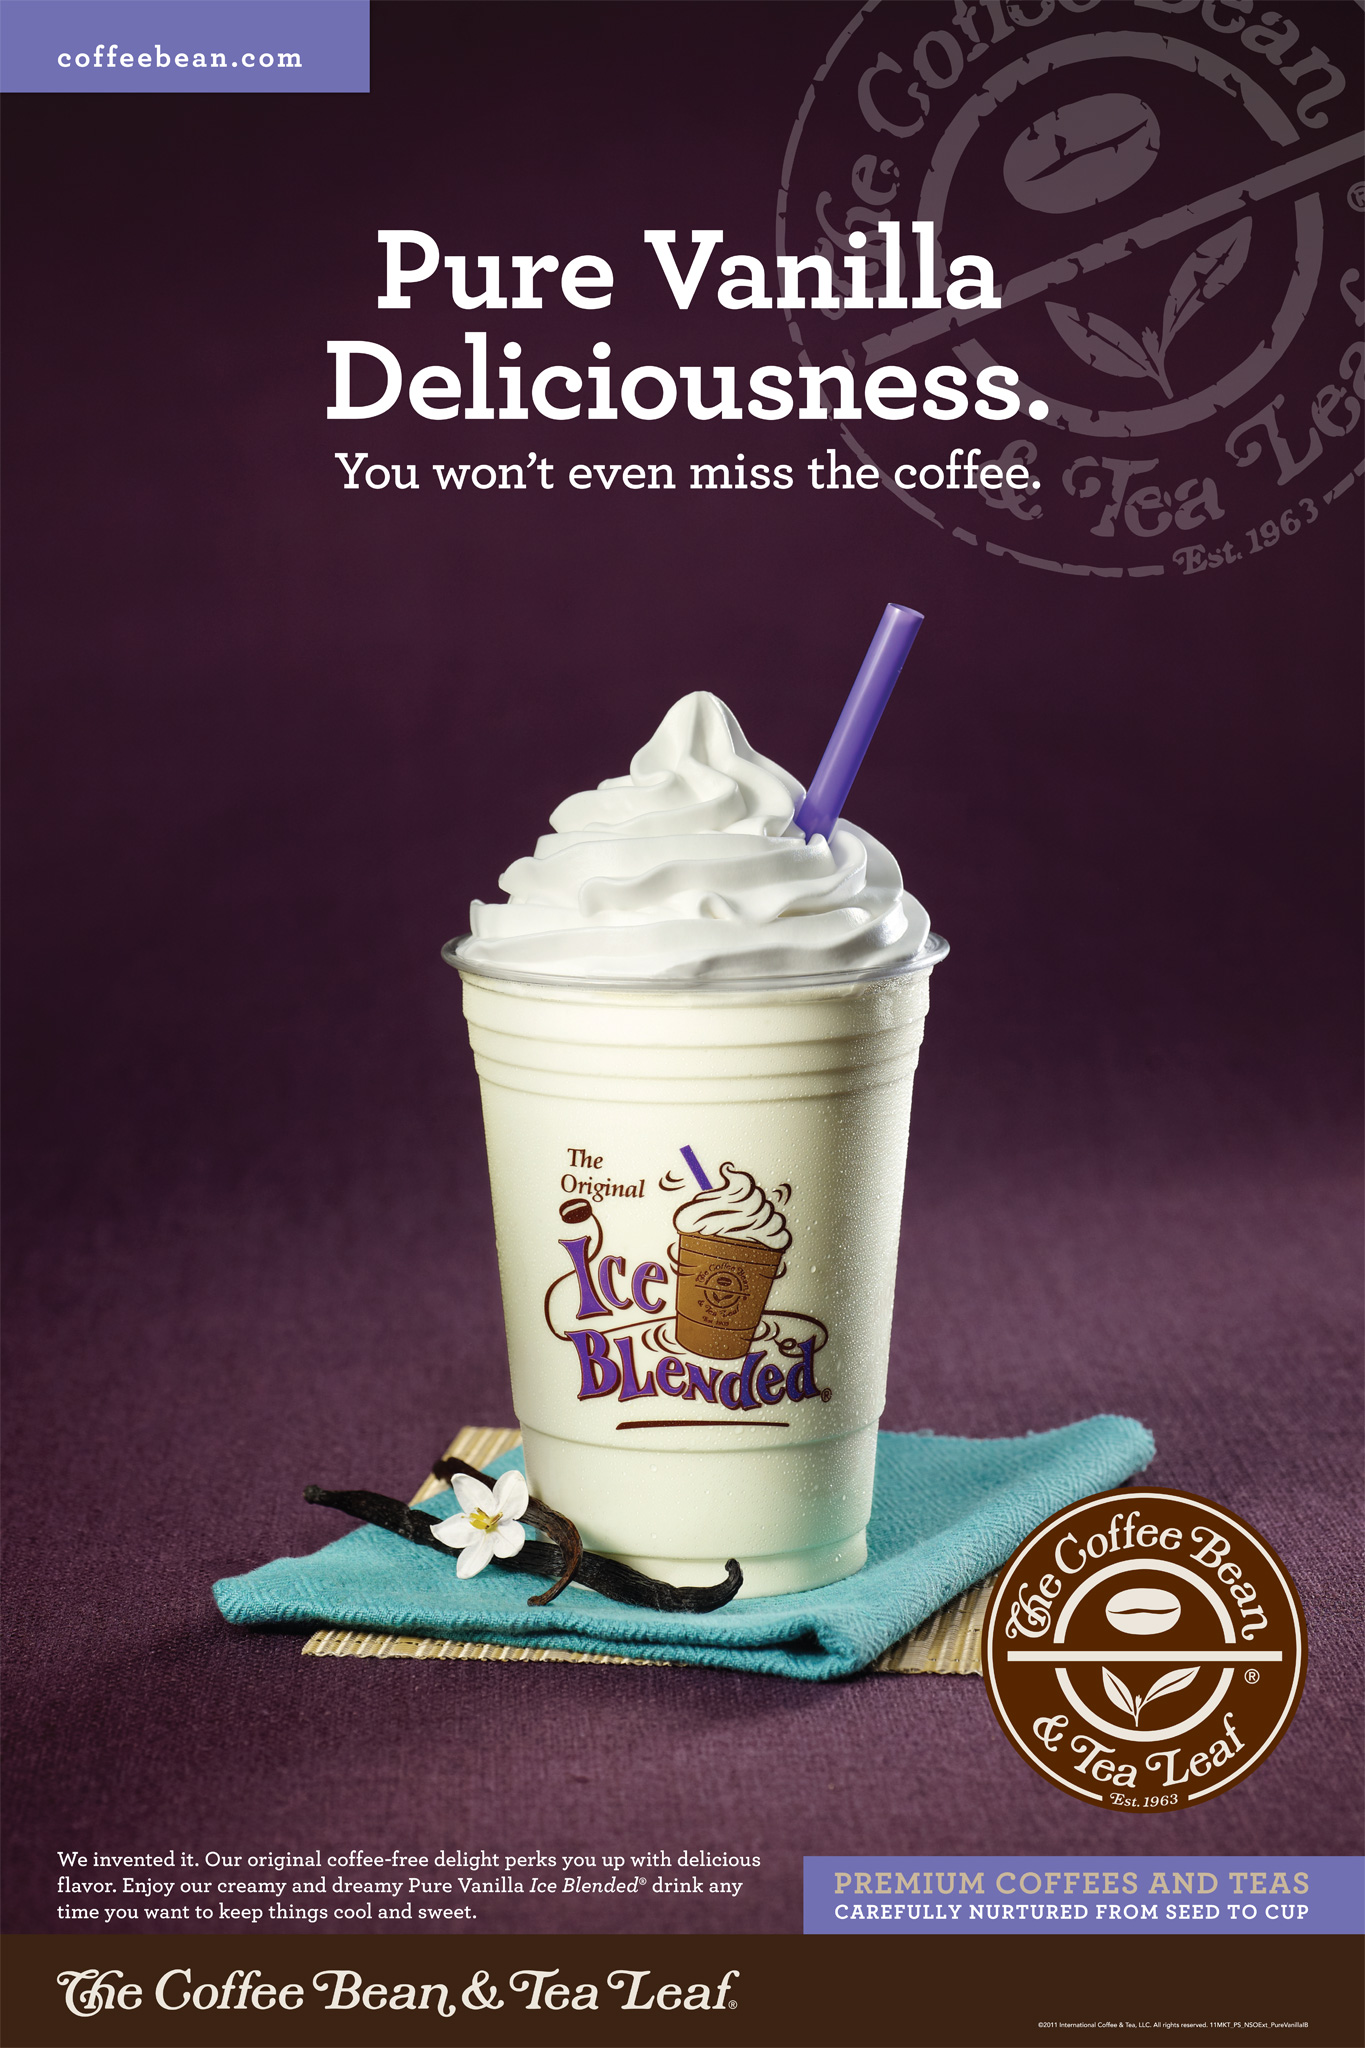 coffee bean and tea leaf fall pure vanilla ice blended in layout.jpg